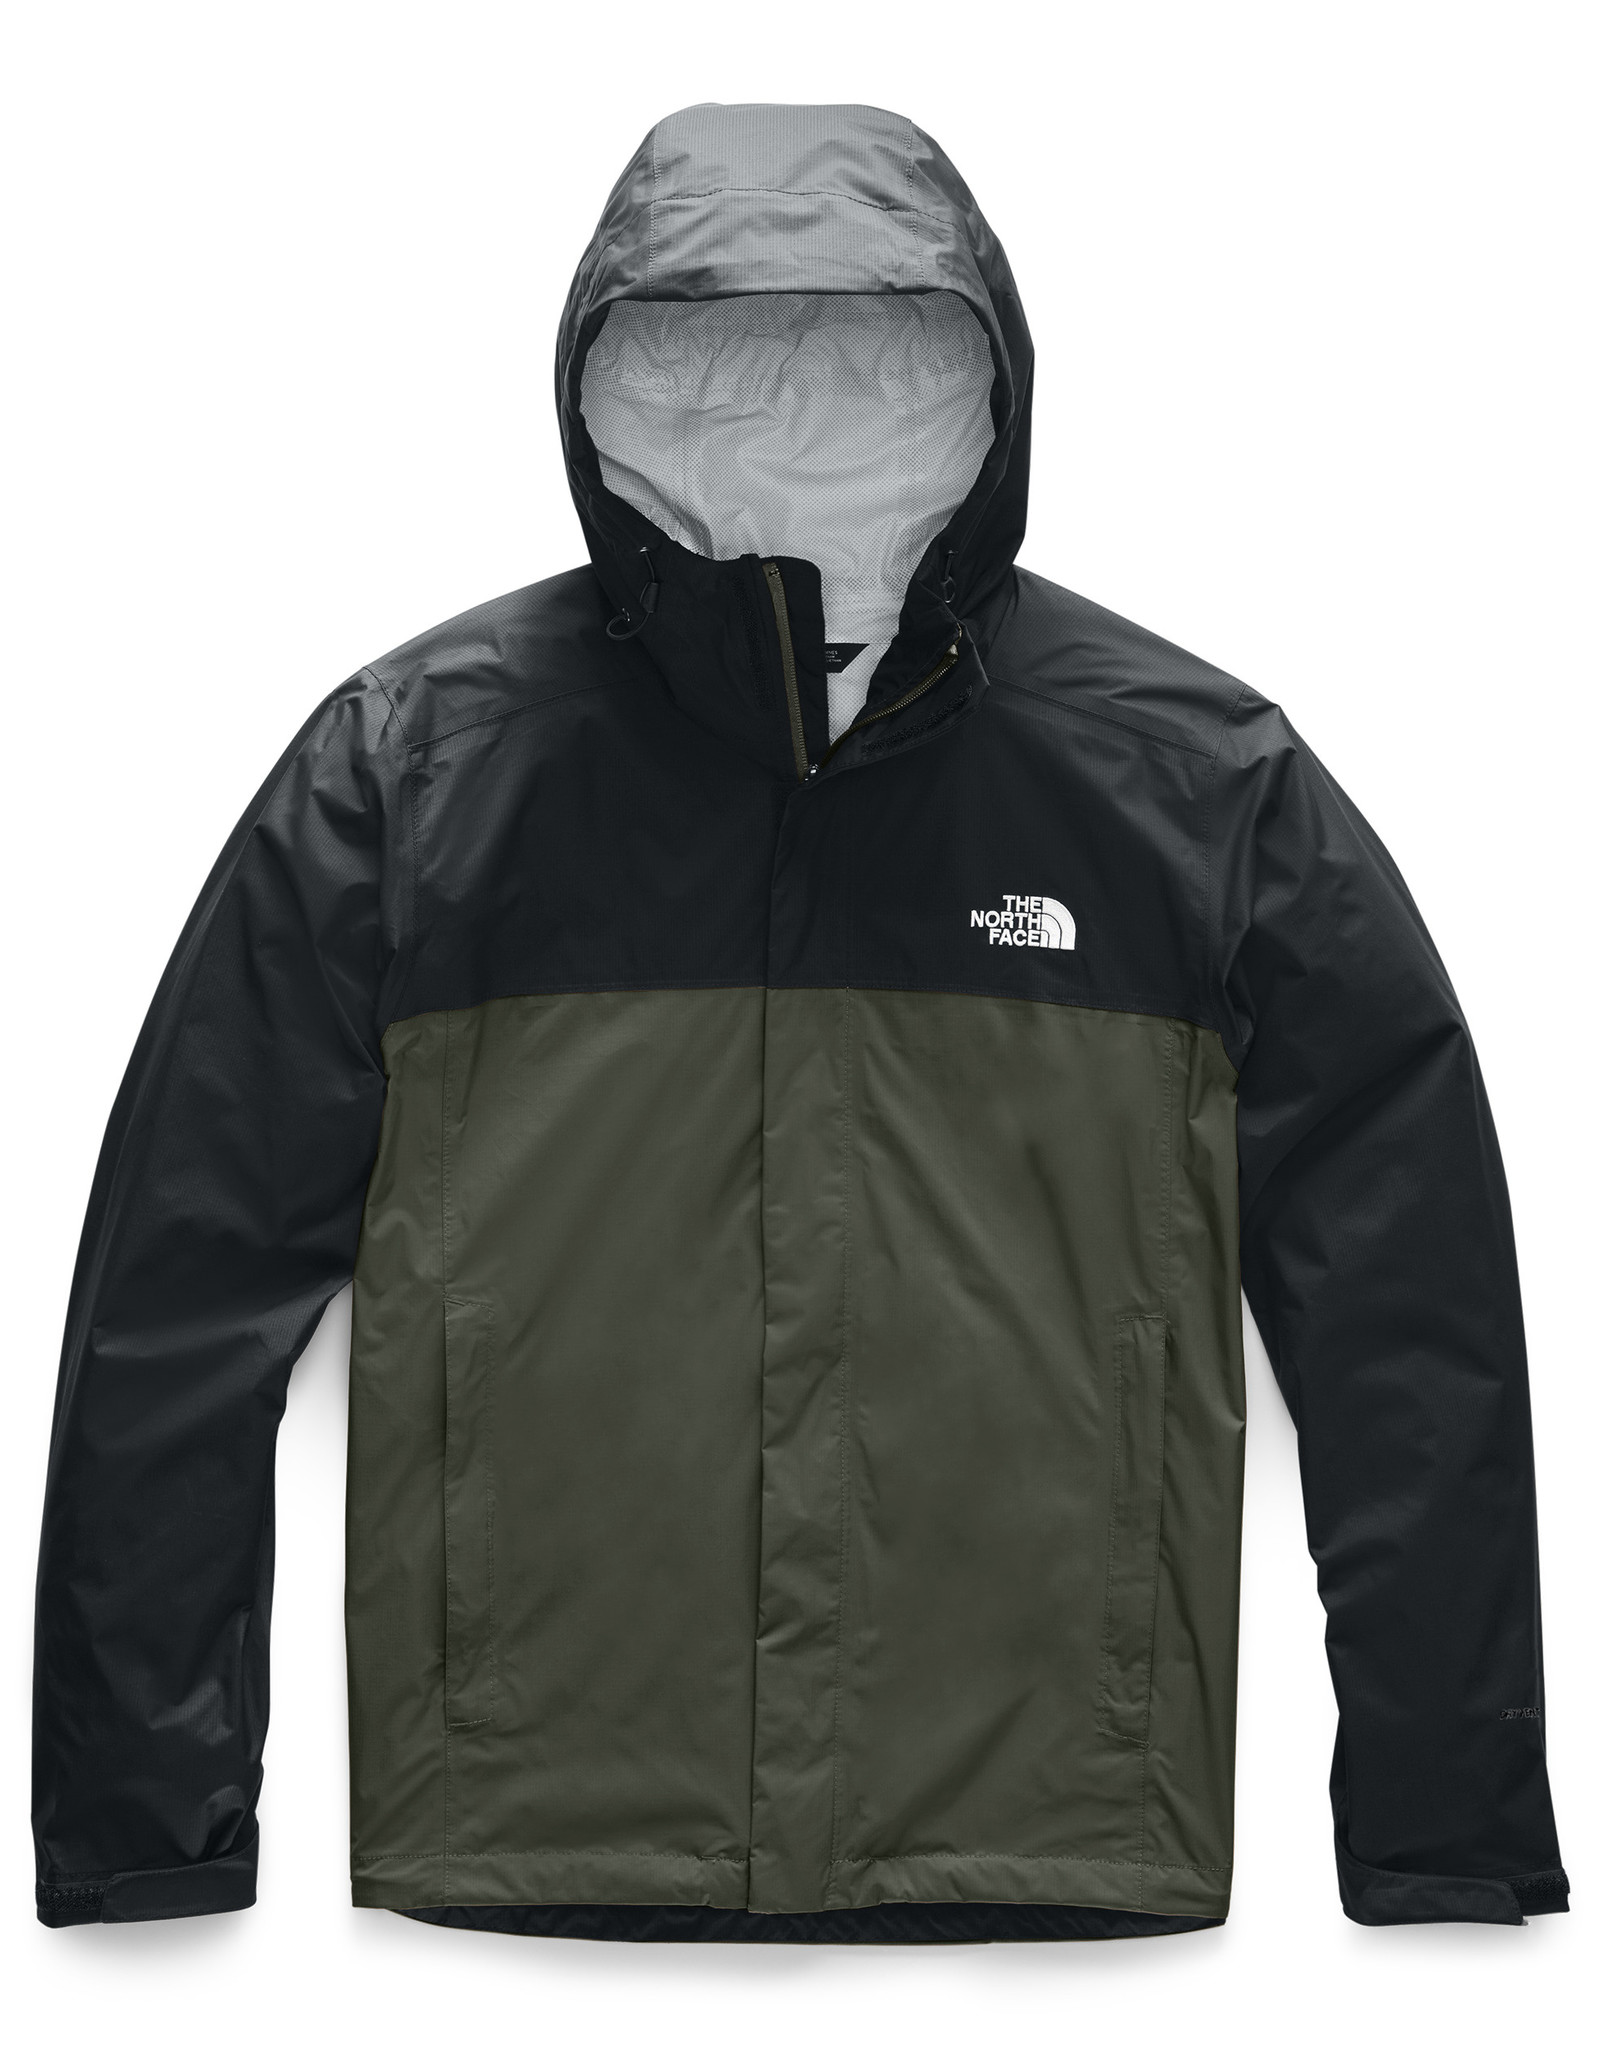 The North Face The North Face Men's Venture 2 Jacket - S2020